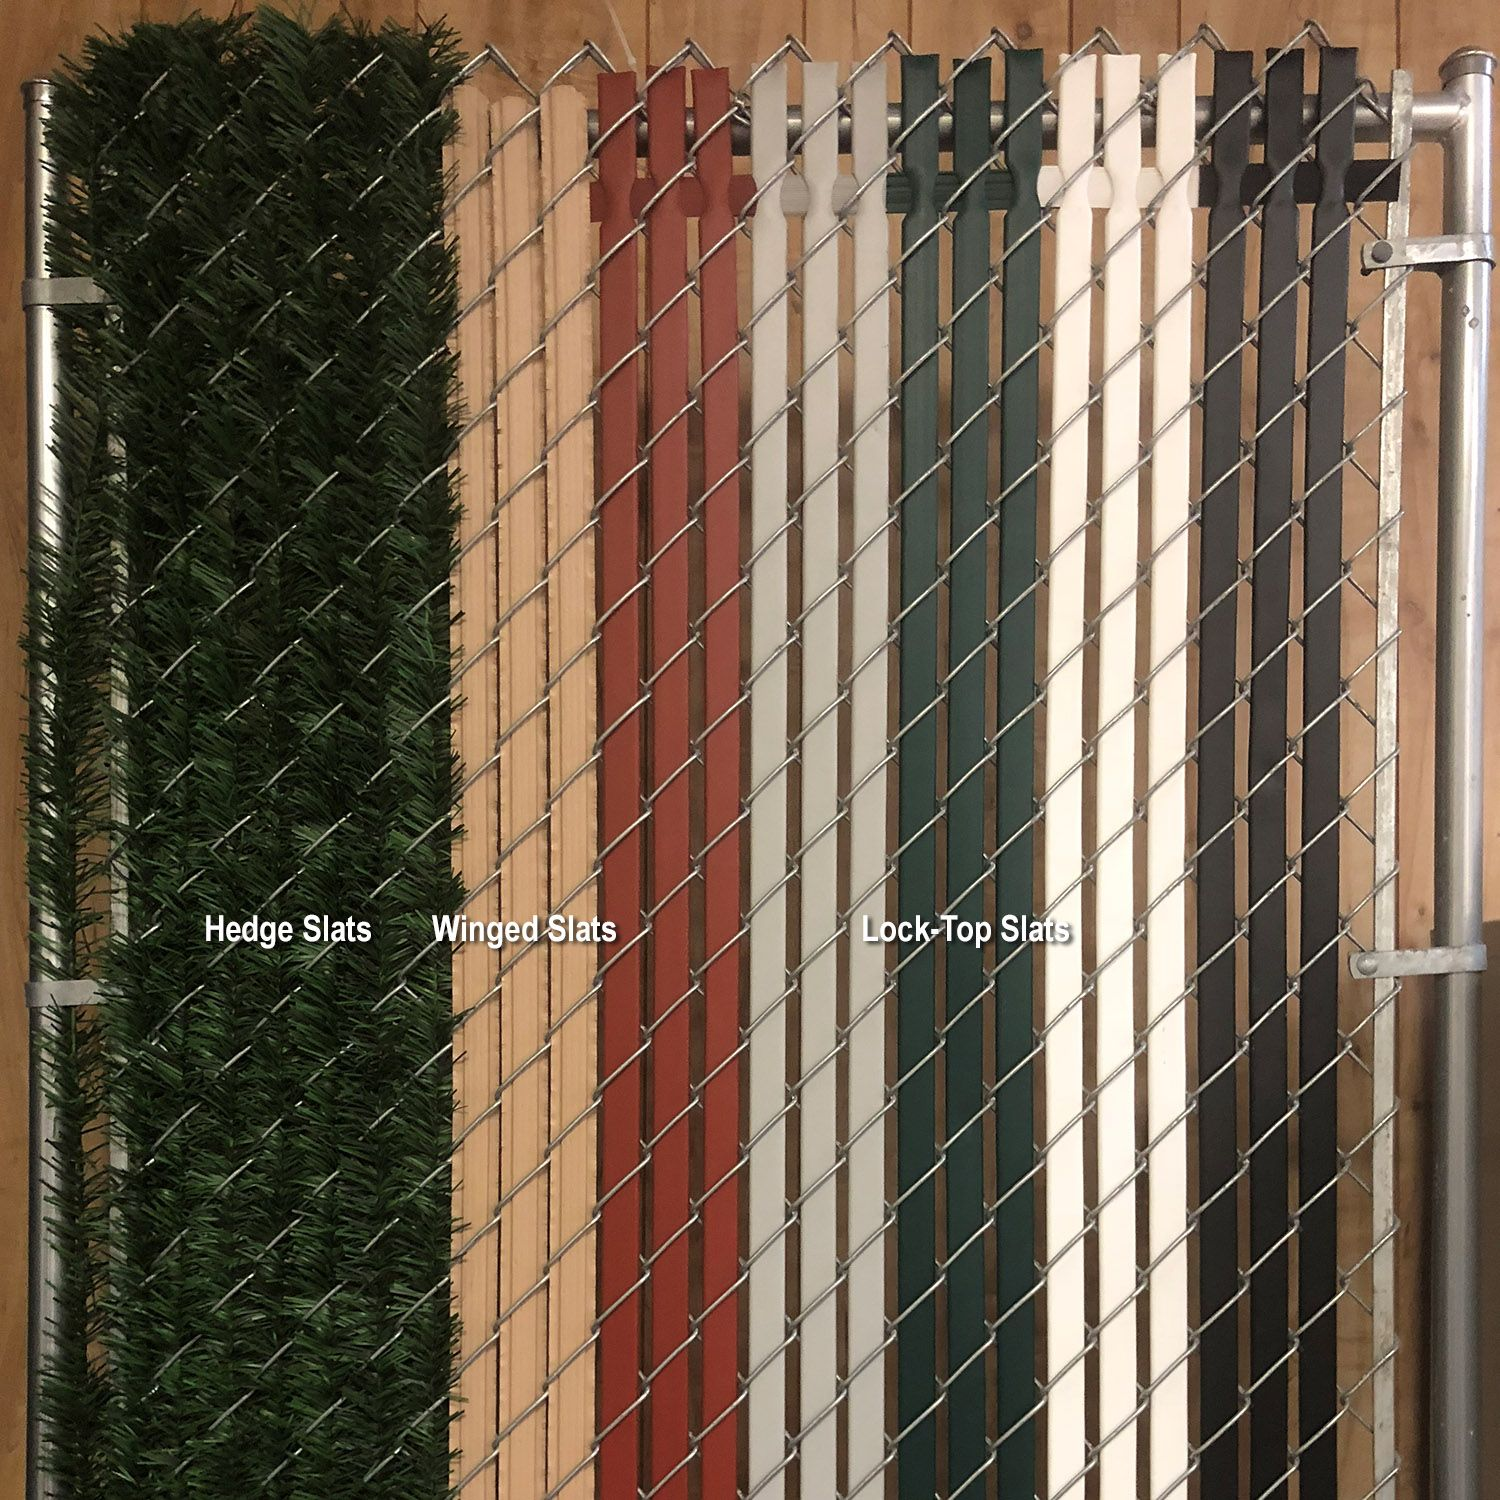 Pvc Privacy Slats For Chain Link Fences Lock Top Style Hoover Fence